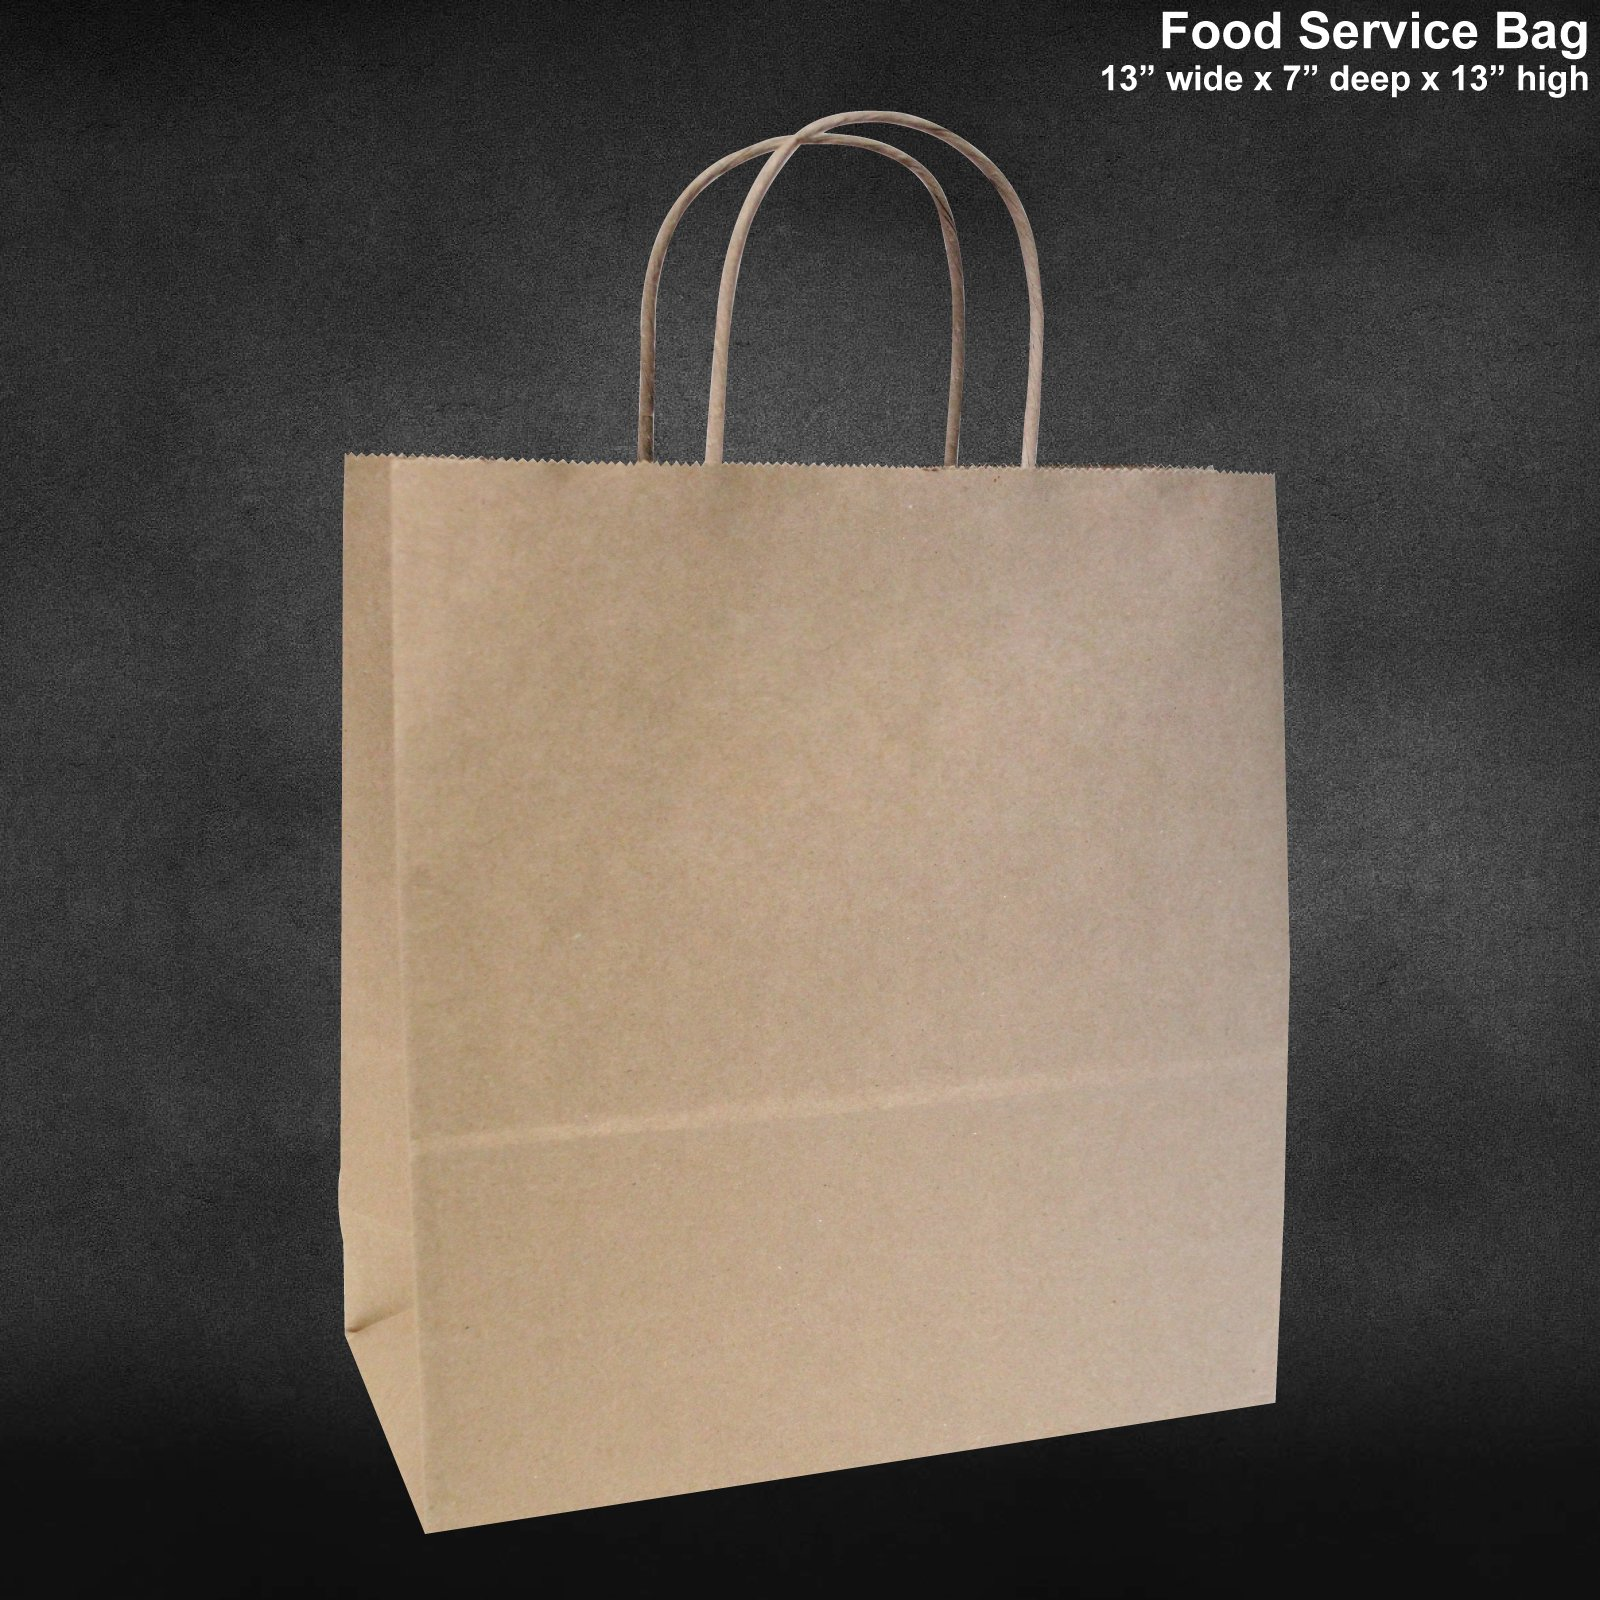 13''x7''x13'' 100 Qty -Paper Restaurant Bags Brown Kraft Paper Bags Shopping Merchandise Bags Party Bags Gift Bags Retail Bags Craft Bags Brown Bag Natural Bag Bagsource®